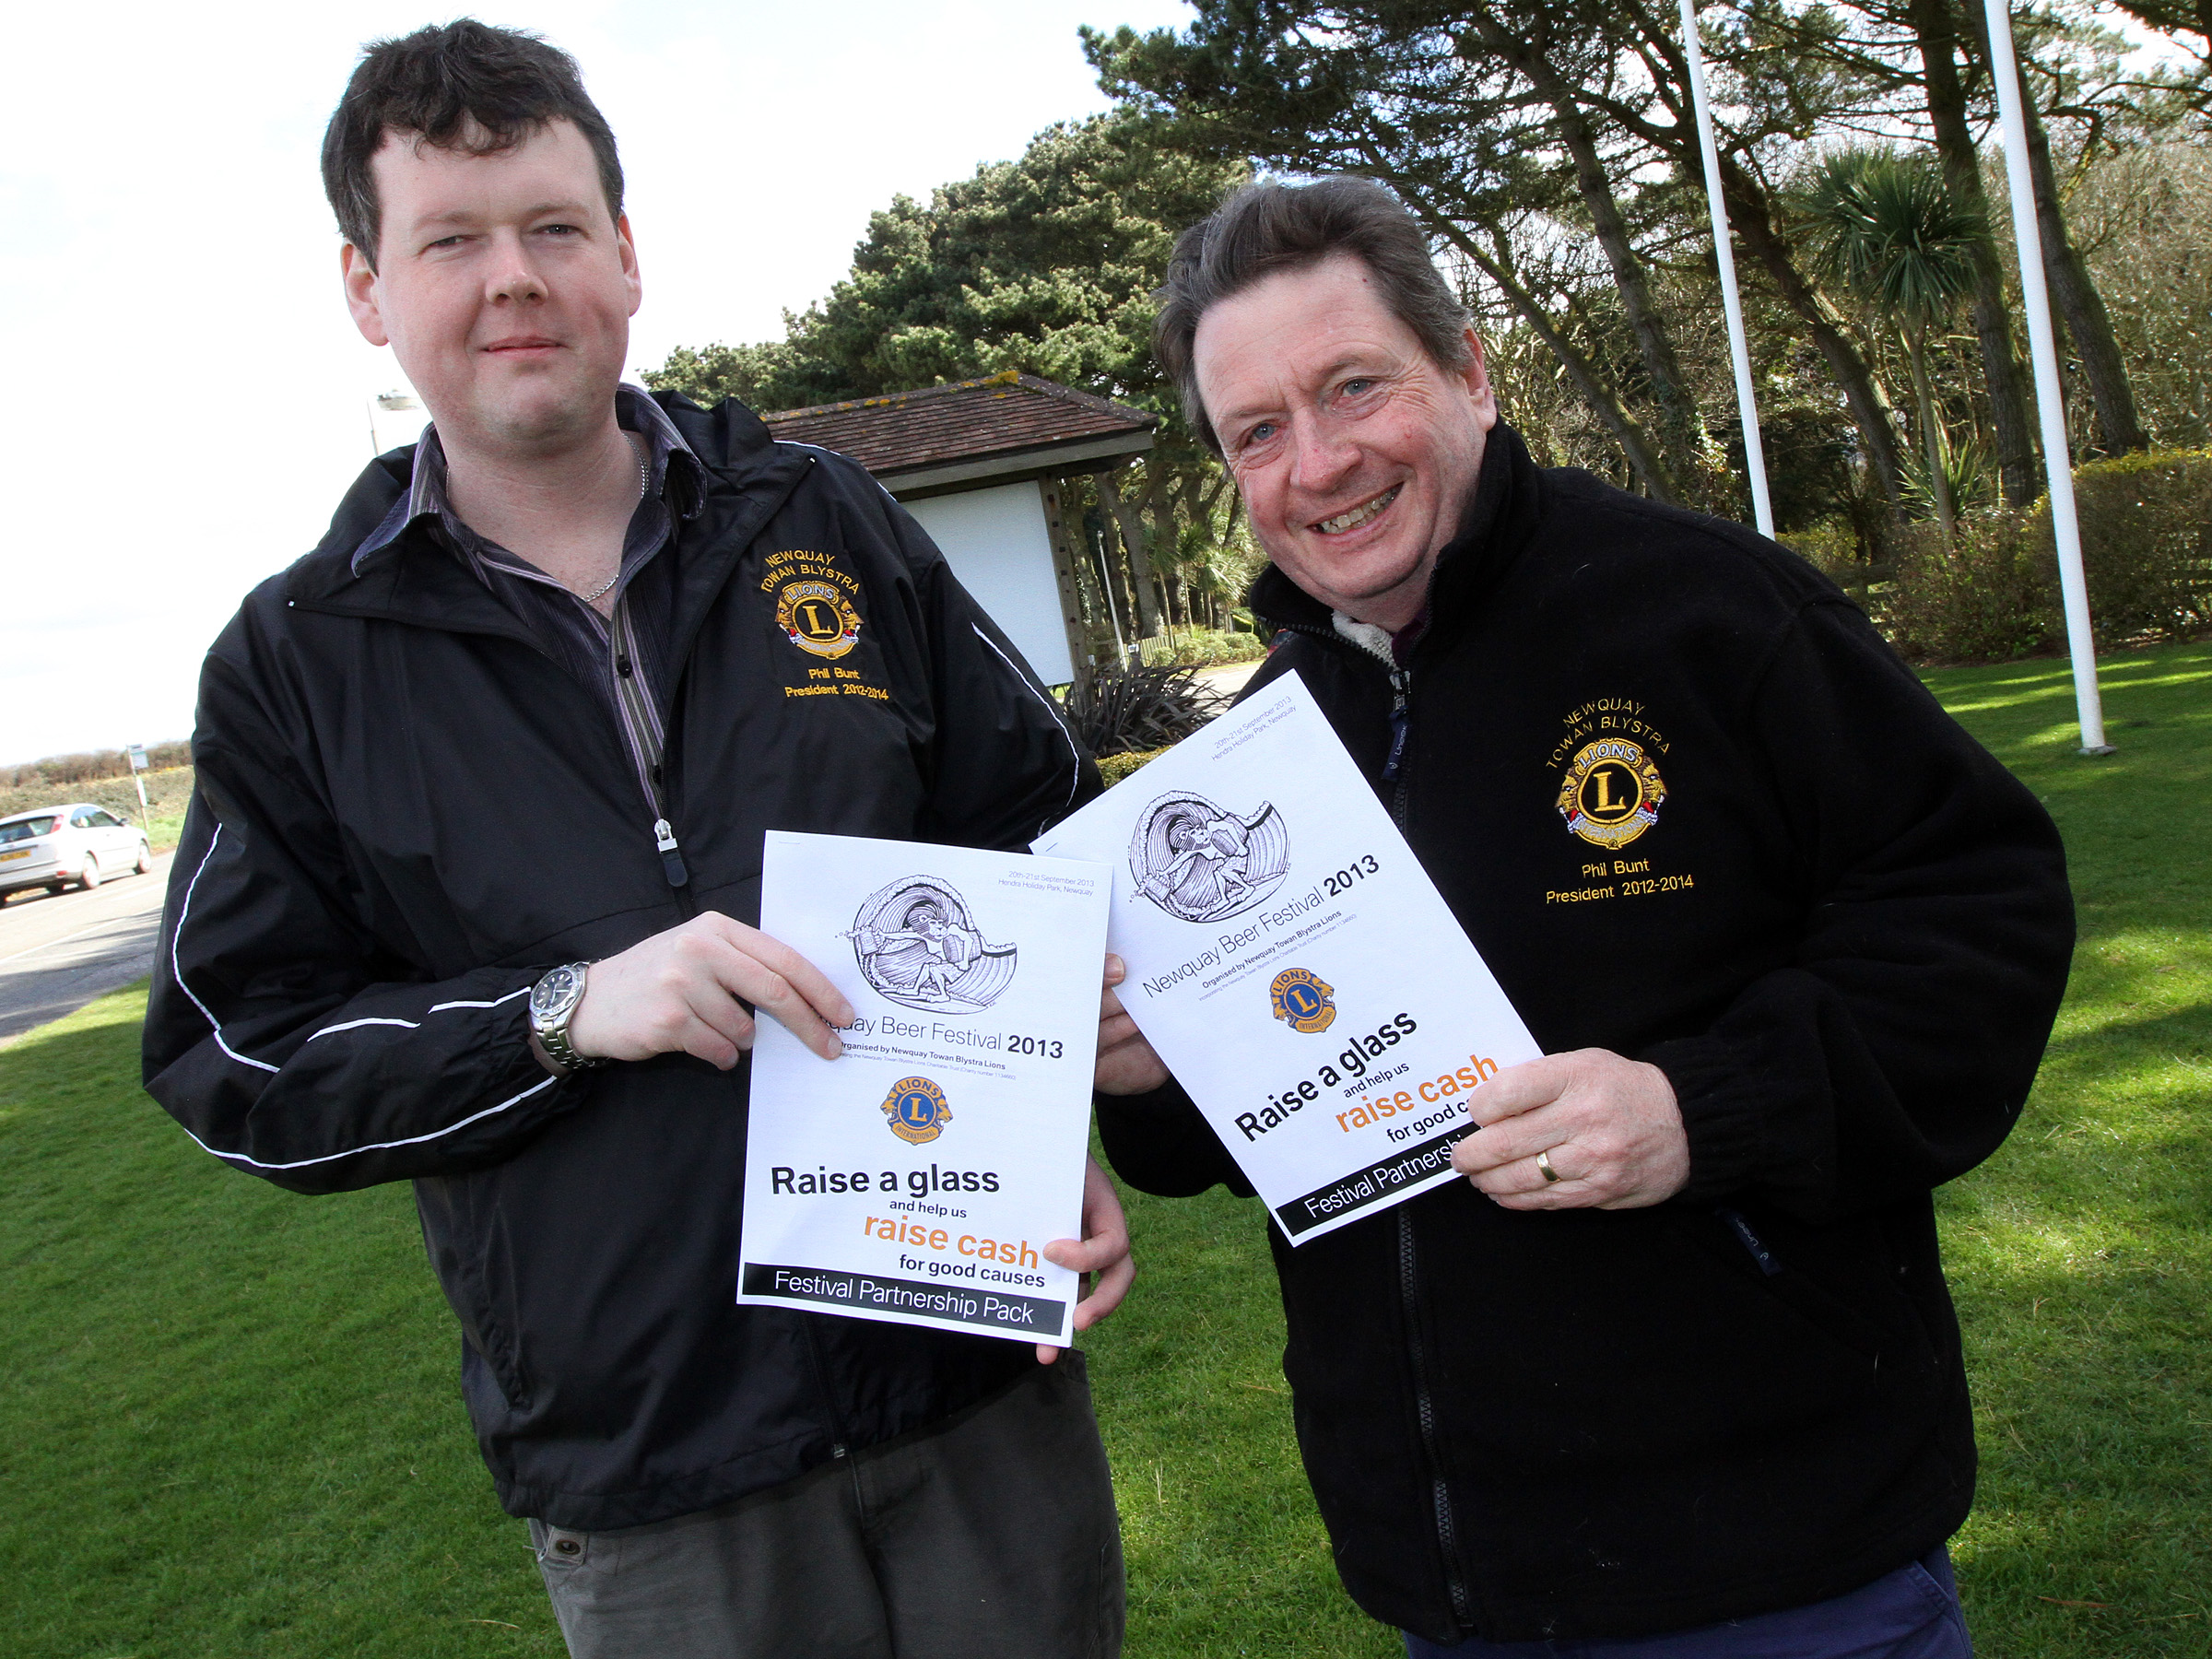 Local businesses invited to support Newquay Beer Festival